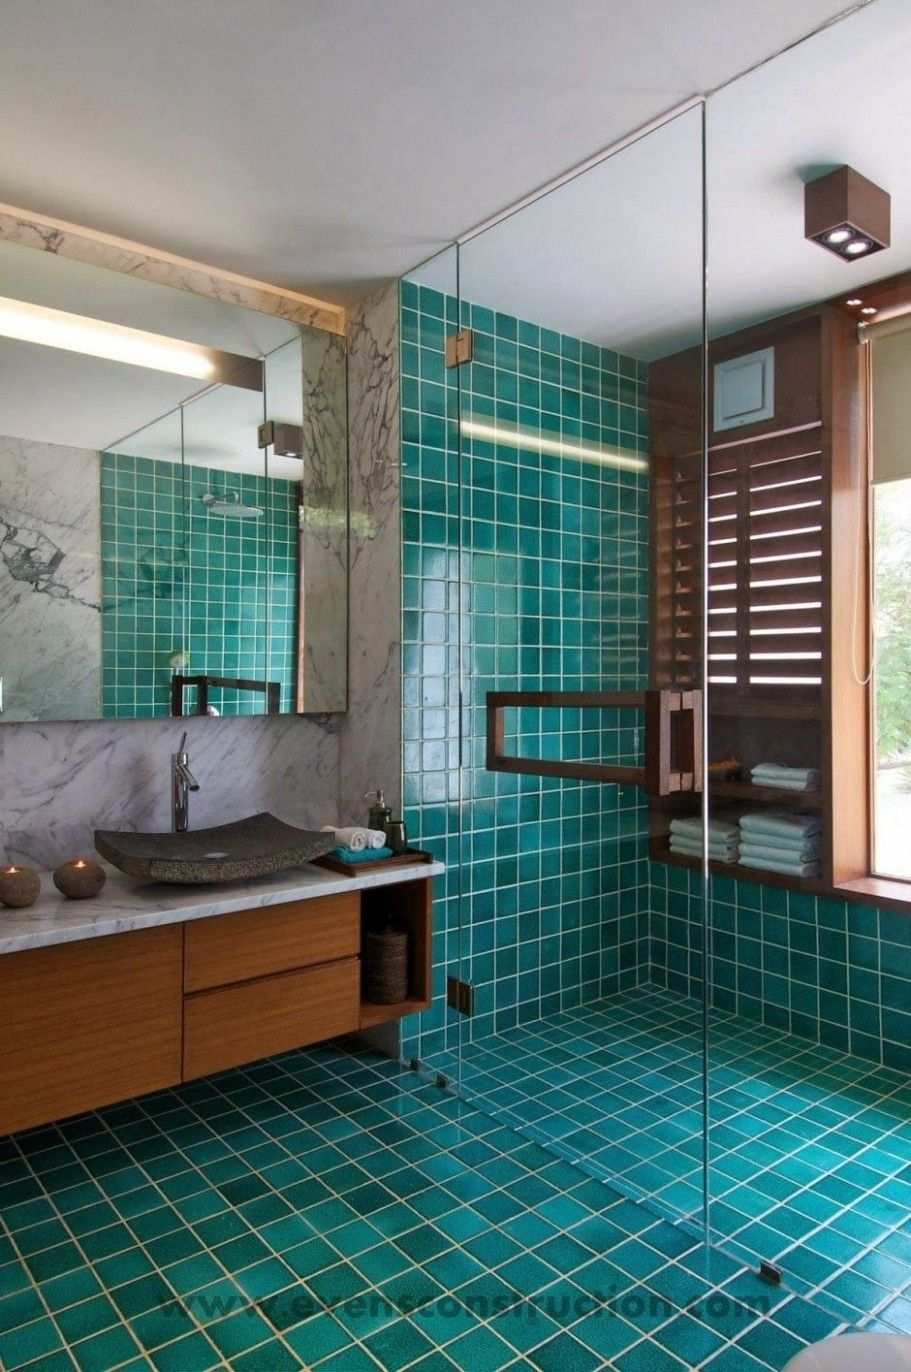 6 Secrets You Will Not Want To Know About Kerala House Floor Tiles Design In 2020 Turquoise Bathroom Courtyard House Bathroom Interior Design